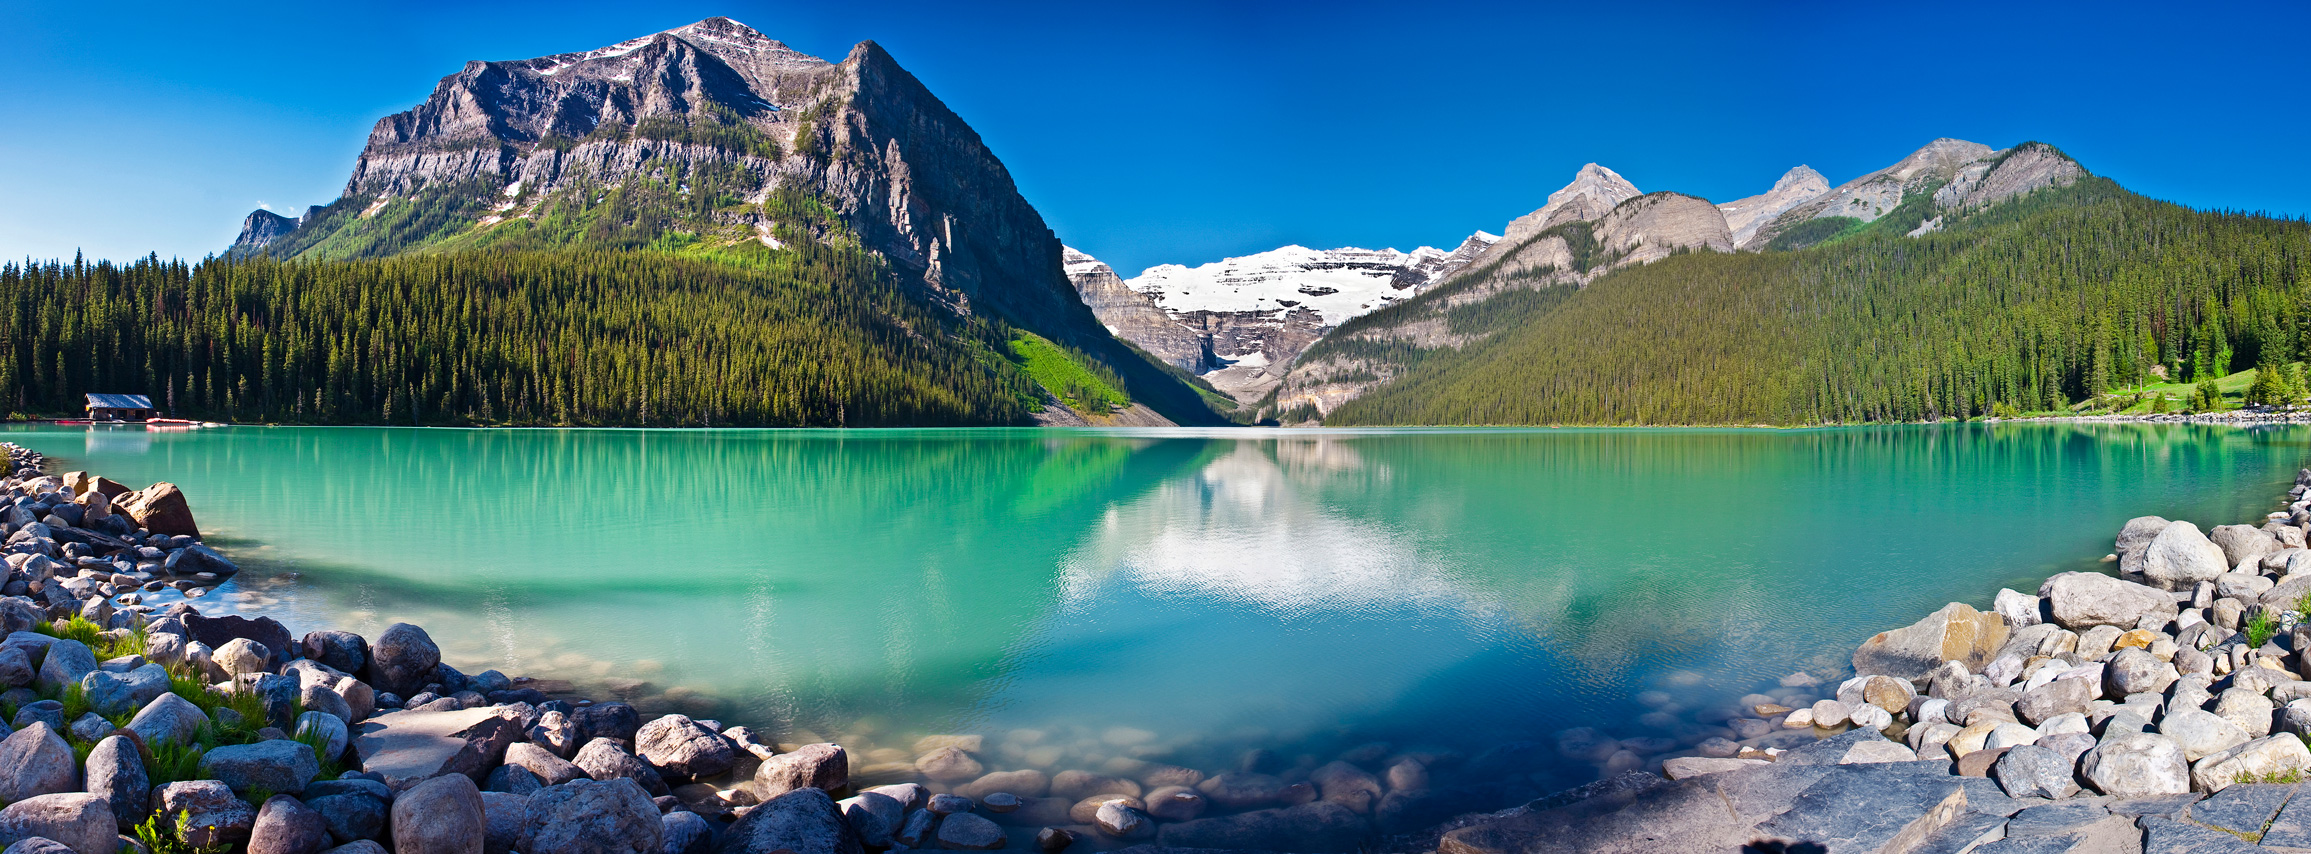 Best Natural Sights In The Canadian Rockies